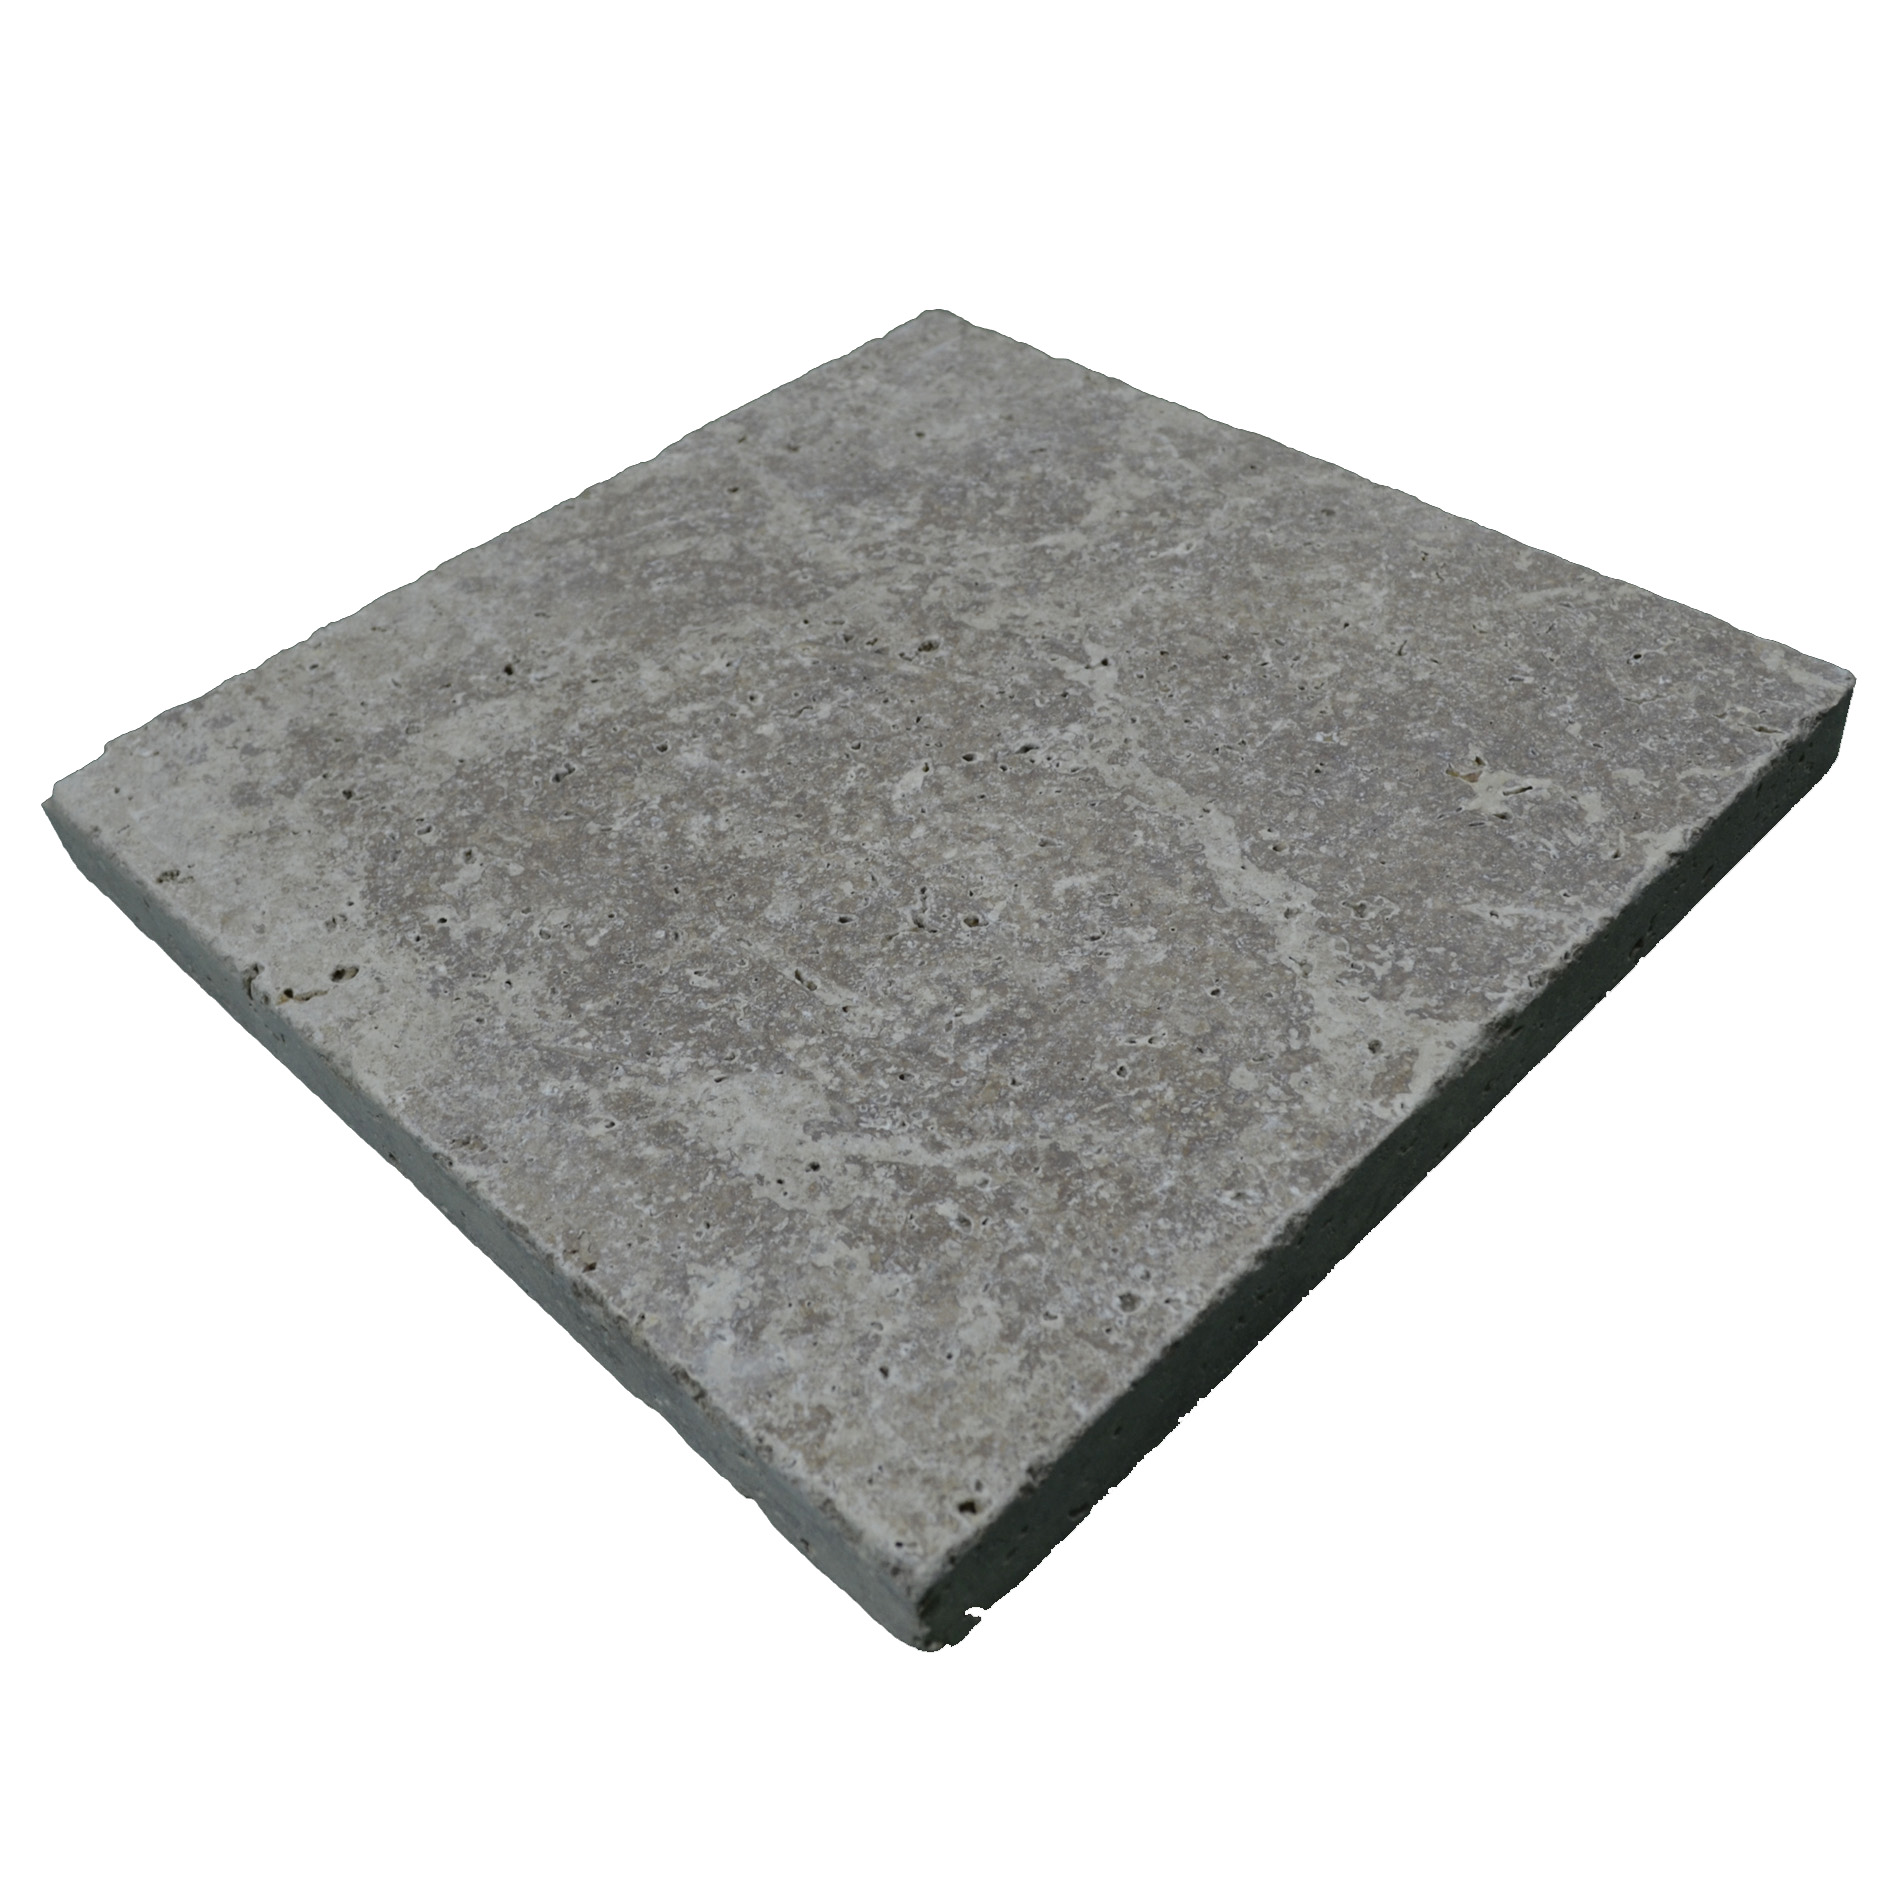 Noce Tumbled Travertine Pavers 16x16-pavers sale-Atlantic Stone Source